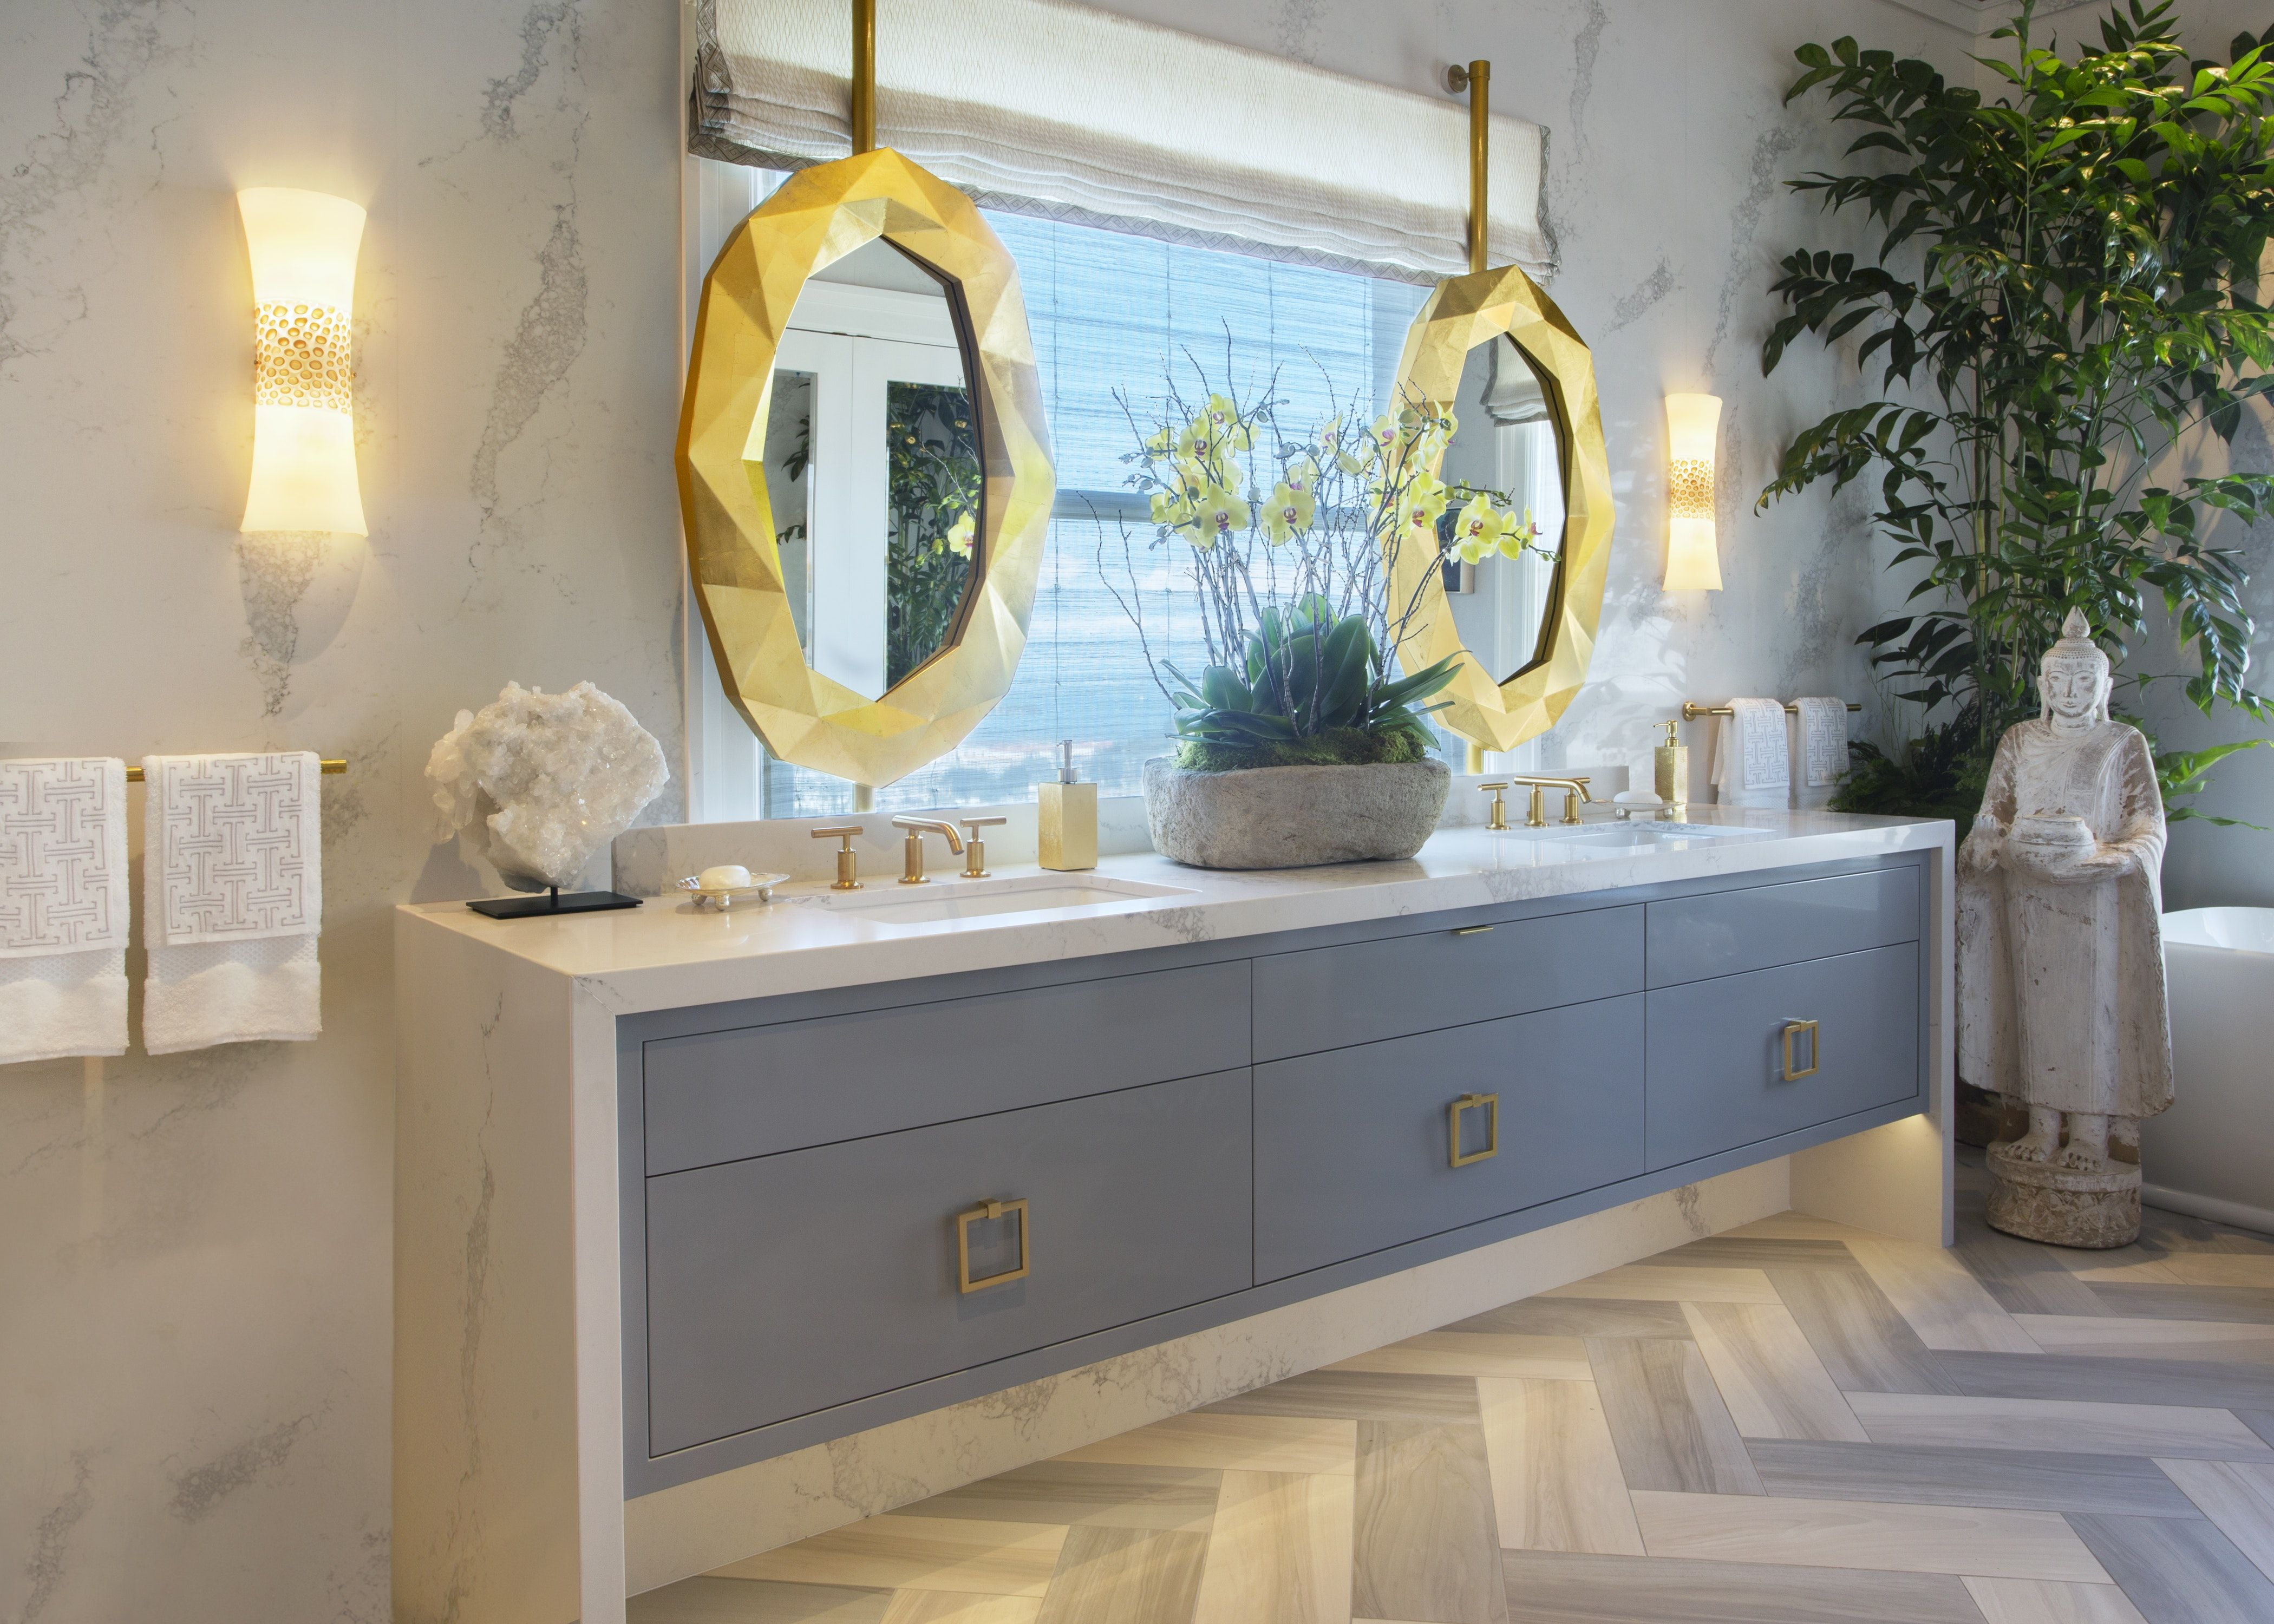 Luxury and glamour meet spastyle in this blissful master bathroom